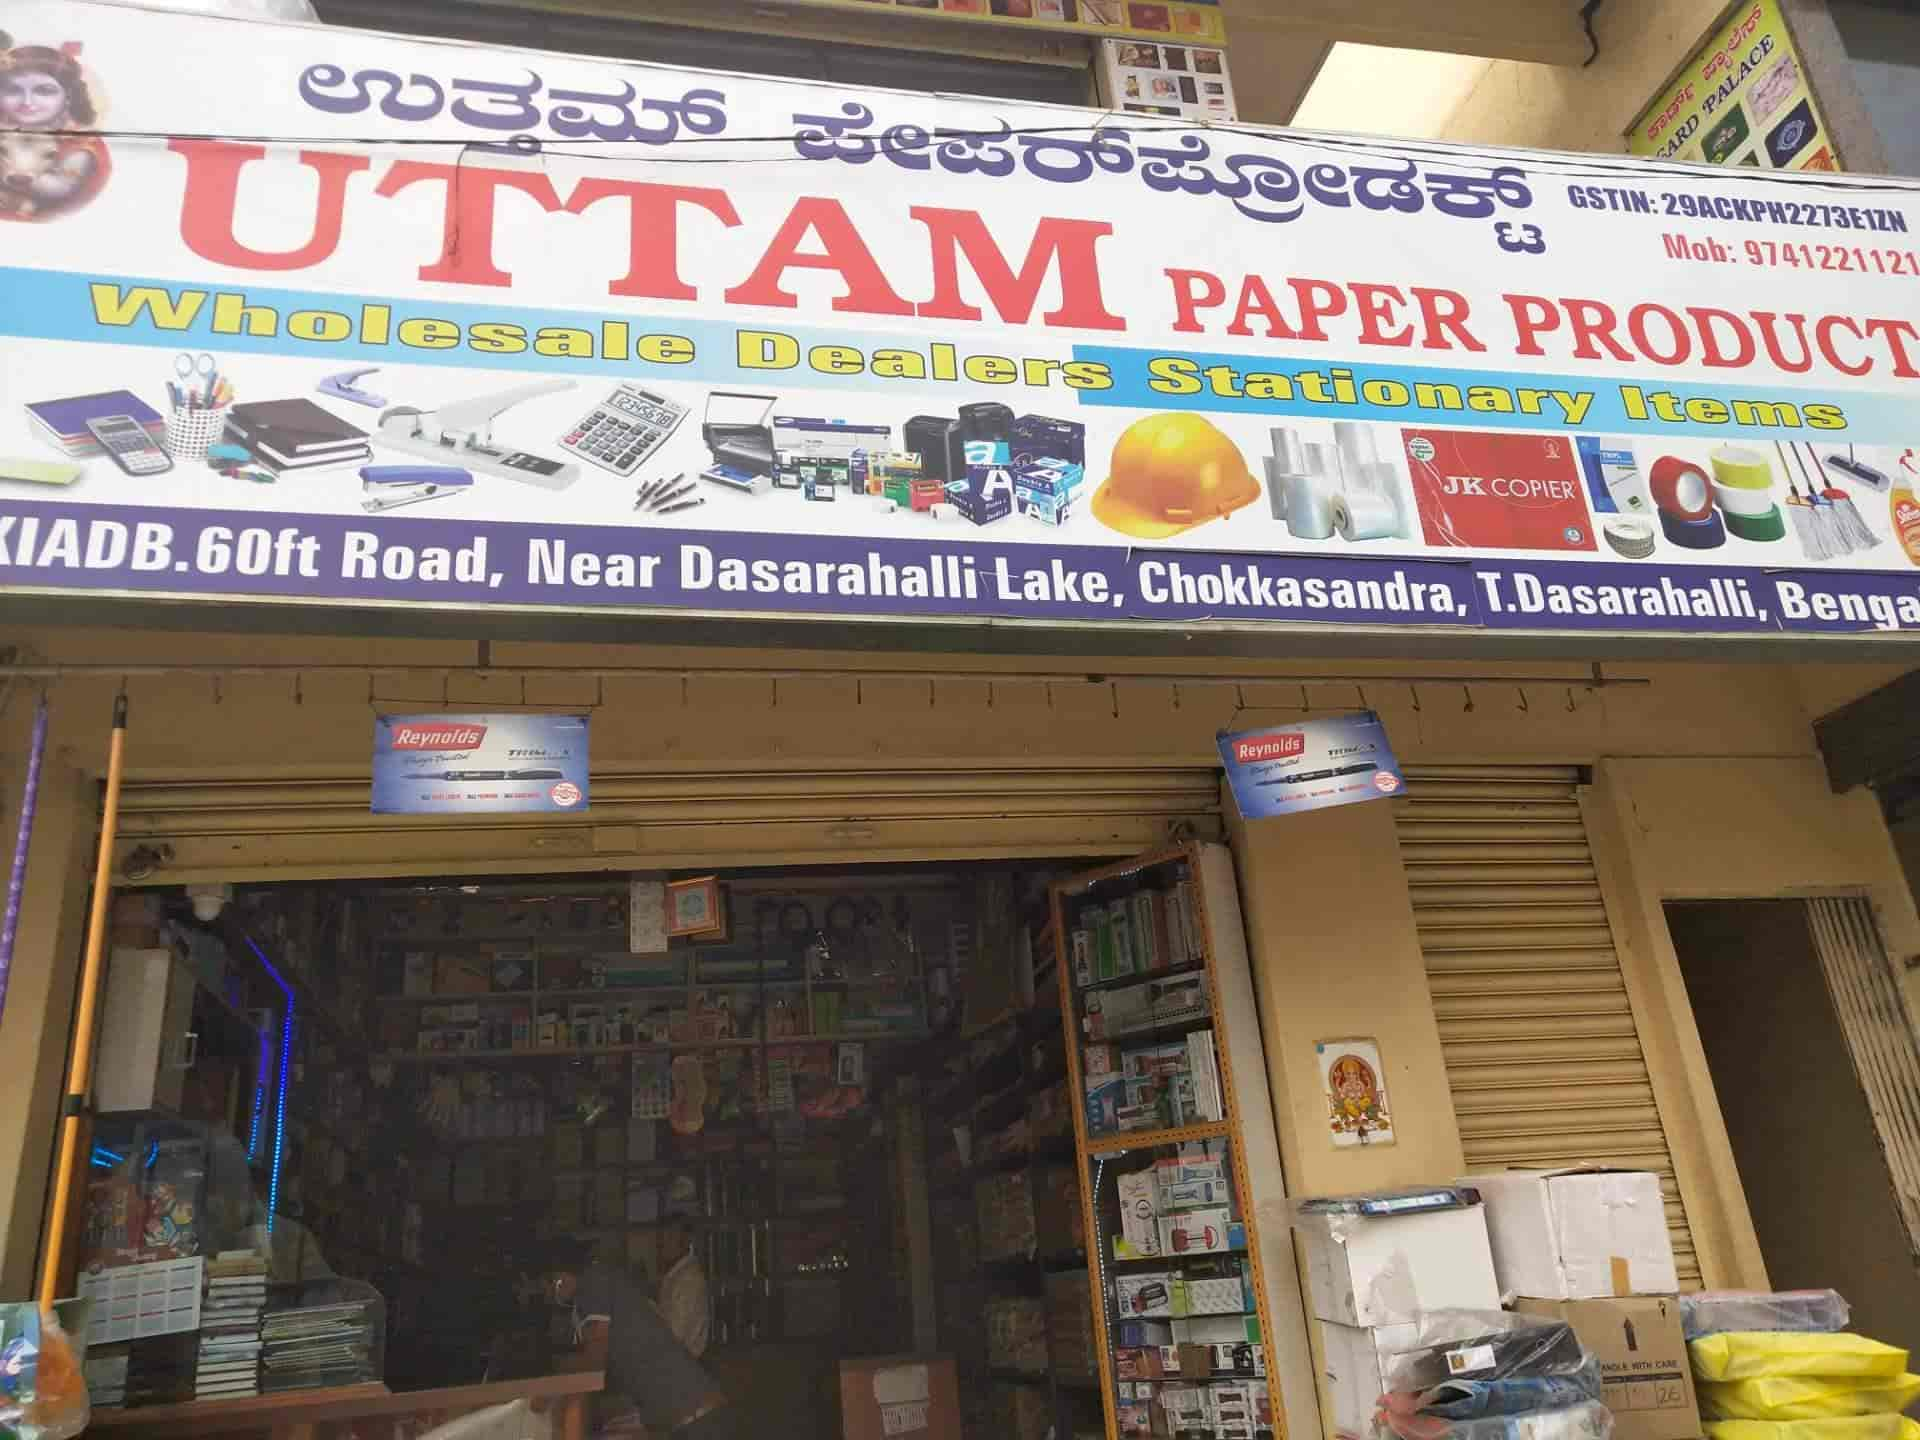 Wedding Card Dealers In Chickpete Bangalore Wedding